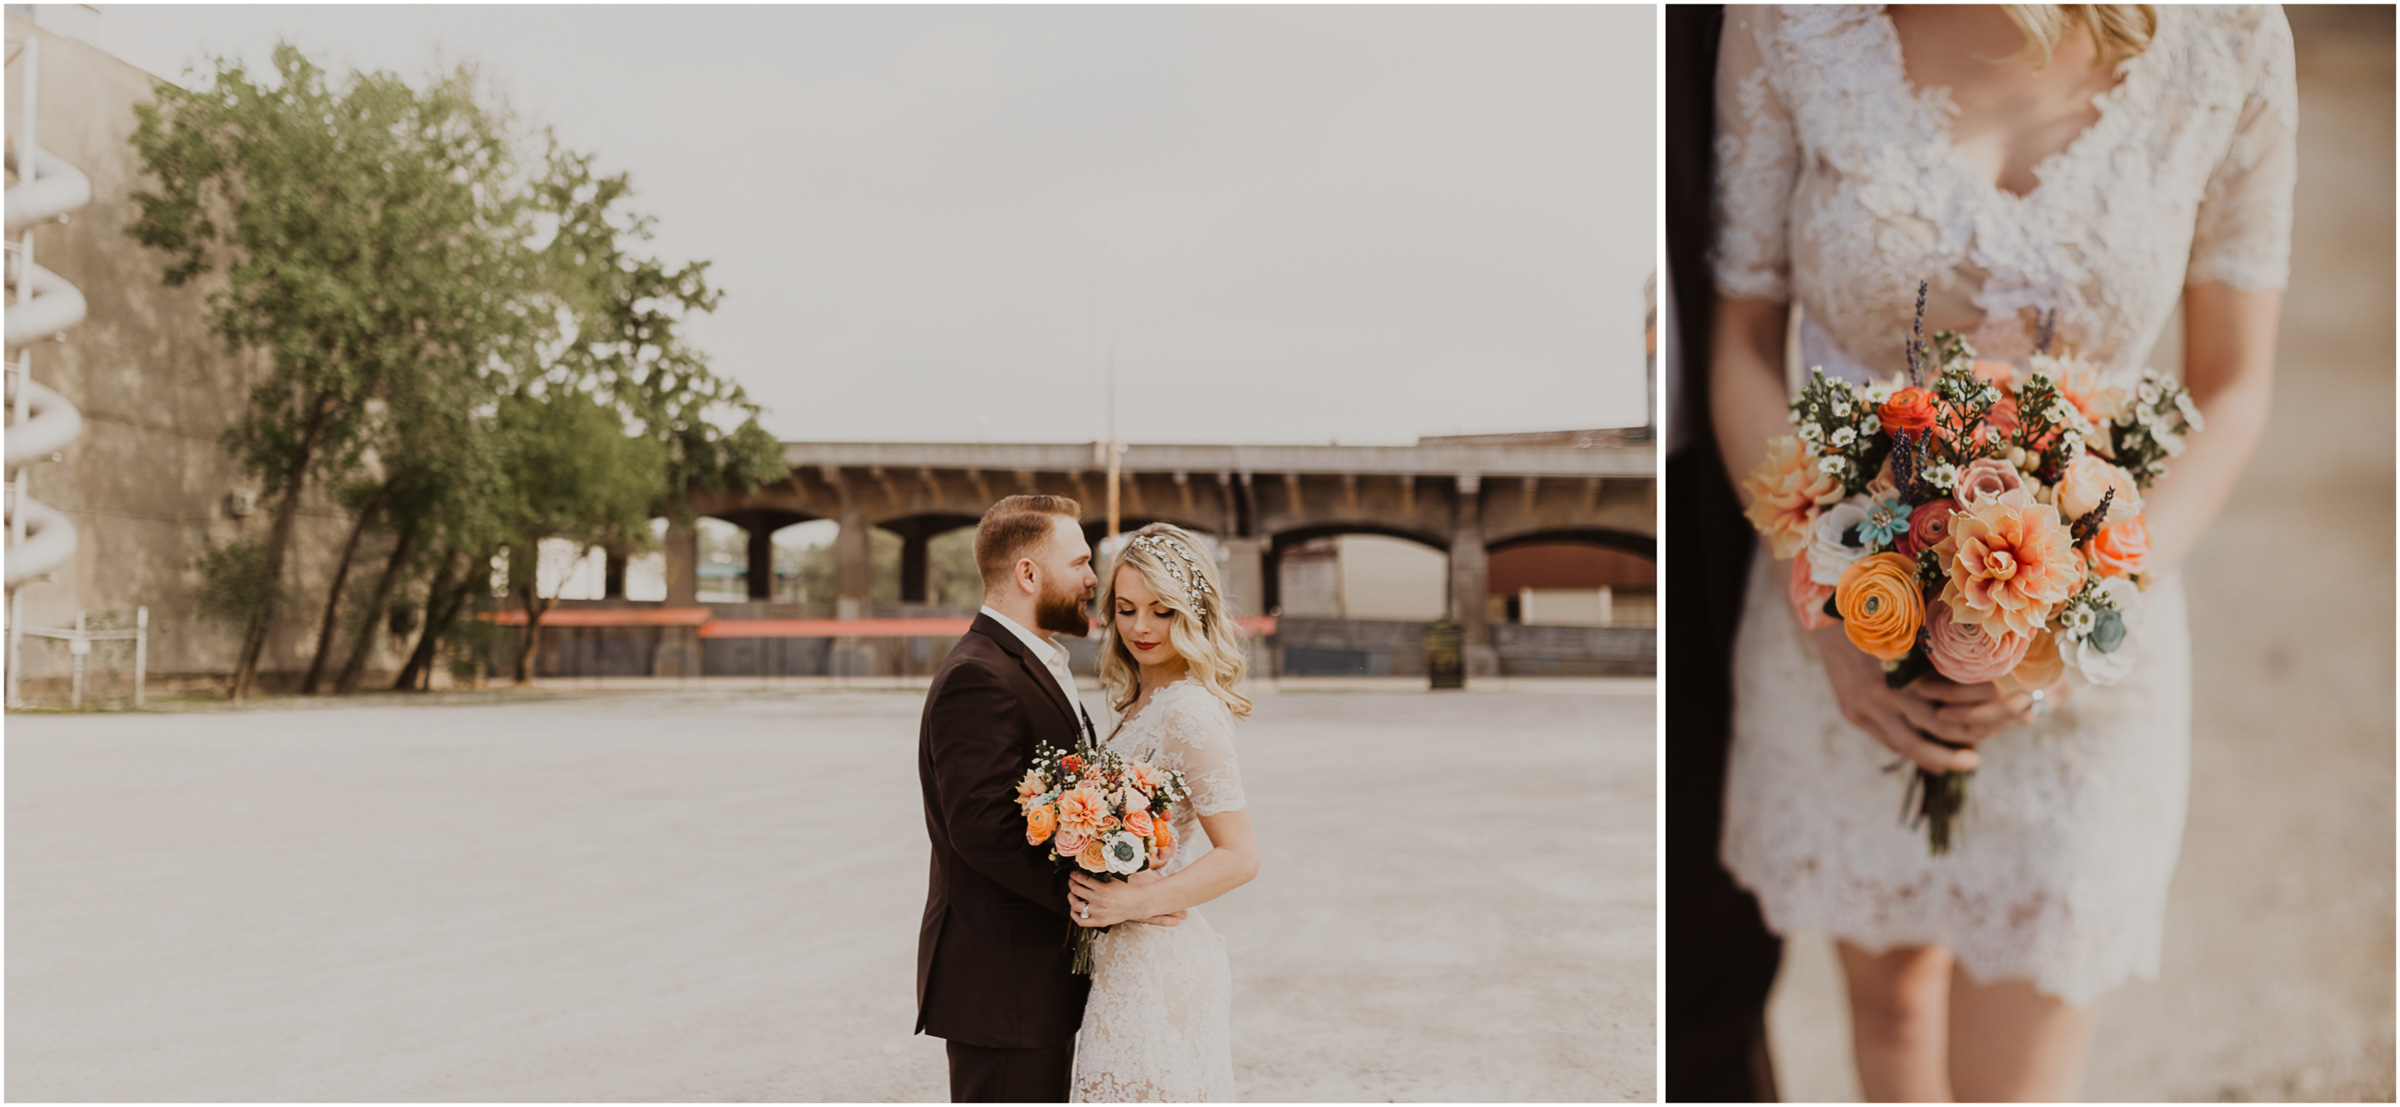 alyssa barletter photography styled shoot wedding inspiration kansas city west bottoms photographer motorcycle edgy intimate-34.jpg